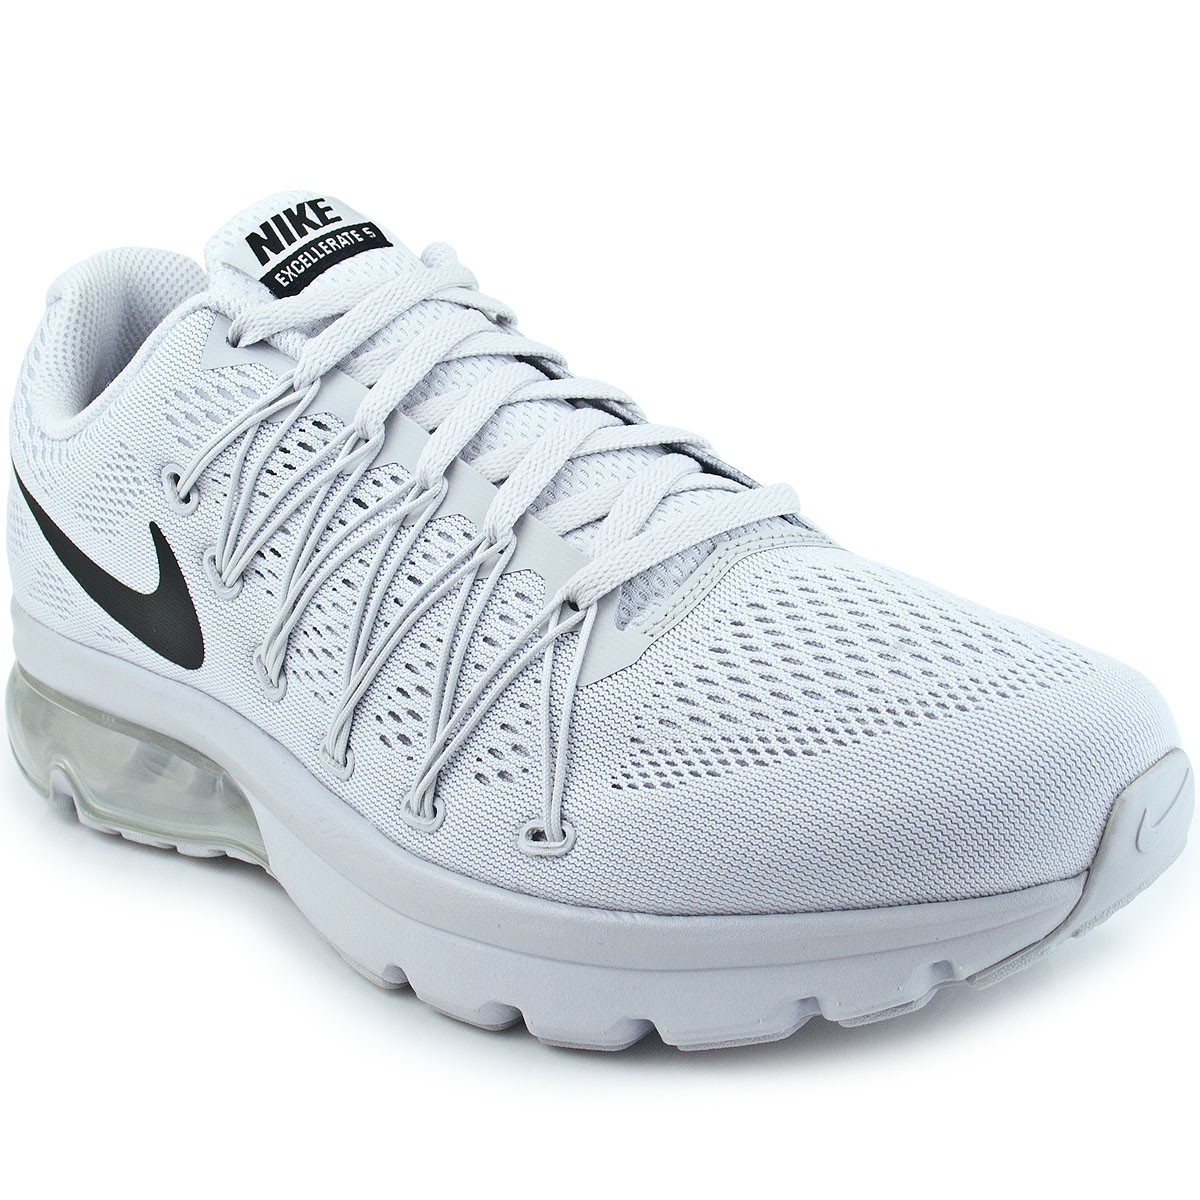 5d1bf44c073 ... mens running shoe black. 1b610 7b334  coupon for tênis nike air max  excellerate 5 852692 ac201 959c3